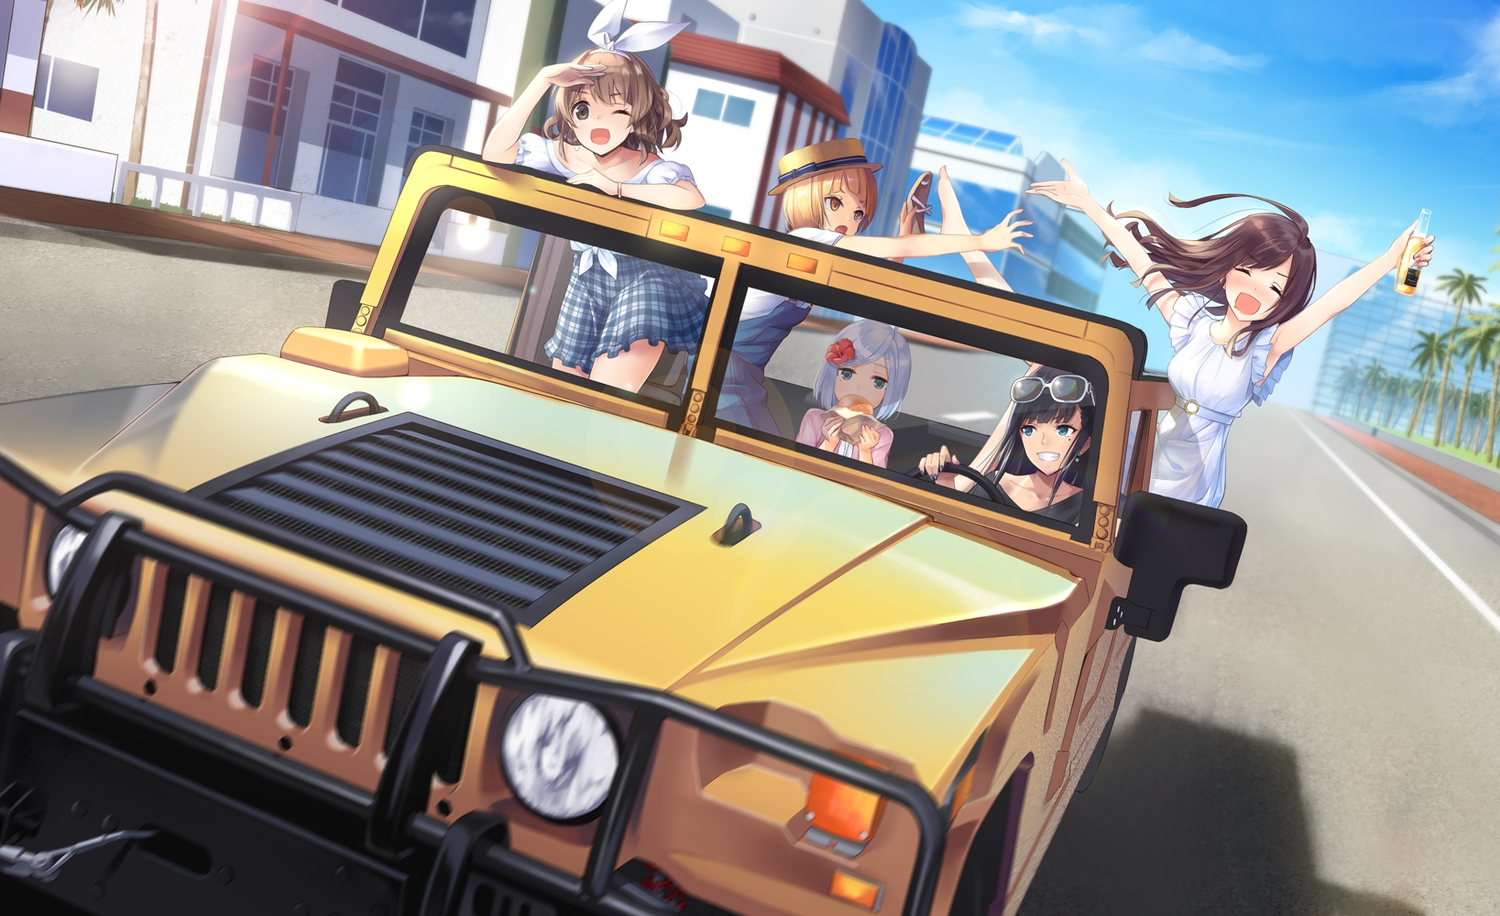 aqua_eyes brown_eyes brown_hair building car city drink food group long_hair meso-meso original short_hair skirt sunglasses tree white_hair wink